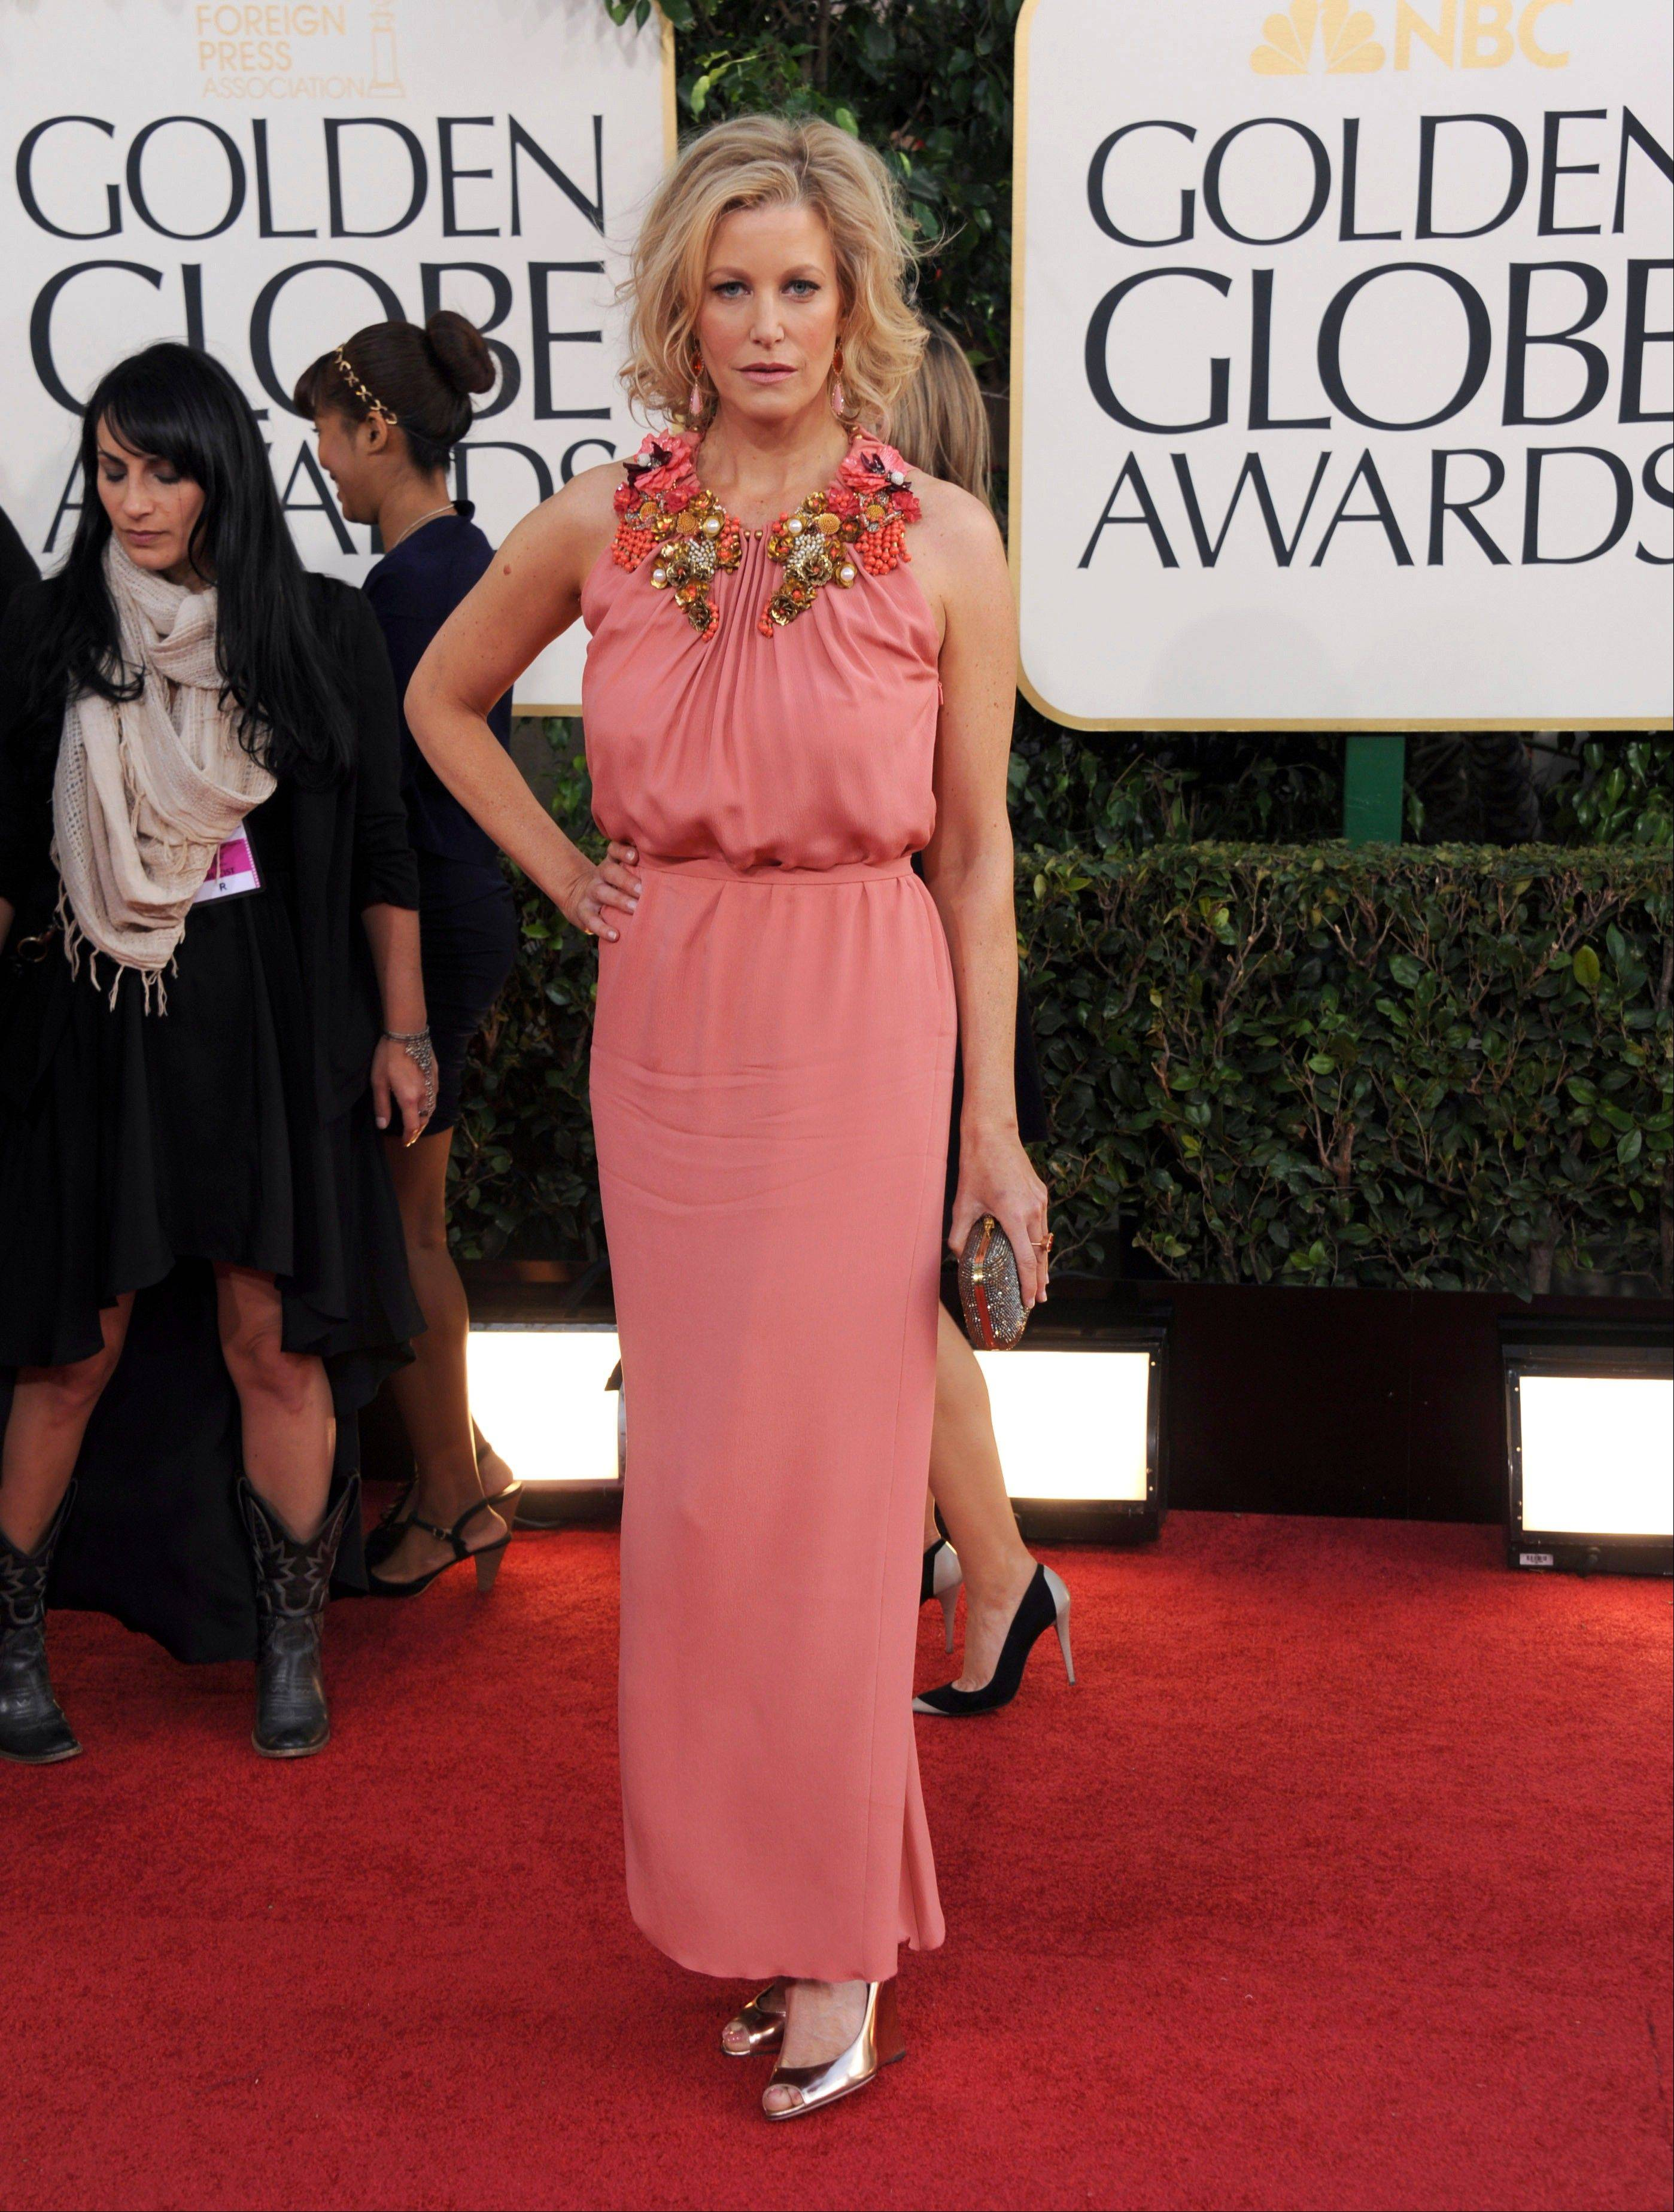 """Breaking Bad"" actress Anna Gunn arrives at the 70th Annual Golden Globe Awards at the Beverly Hilton Hotel on Sunday Jan. 13, 2013, in Beverly Hills, Calif. (Photo by Jordan Strauss/Invision/AP)"